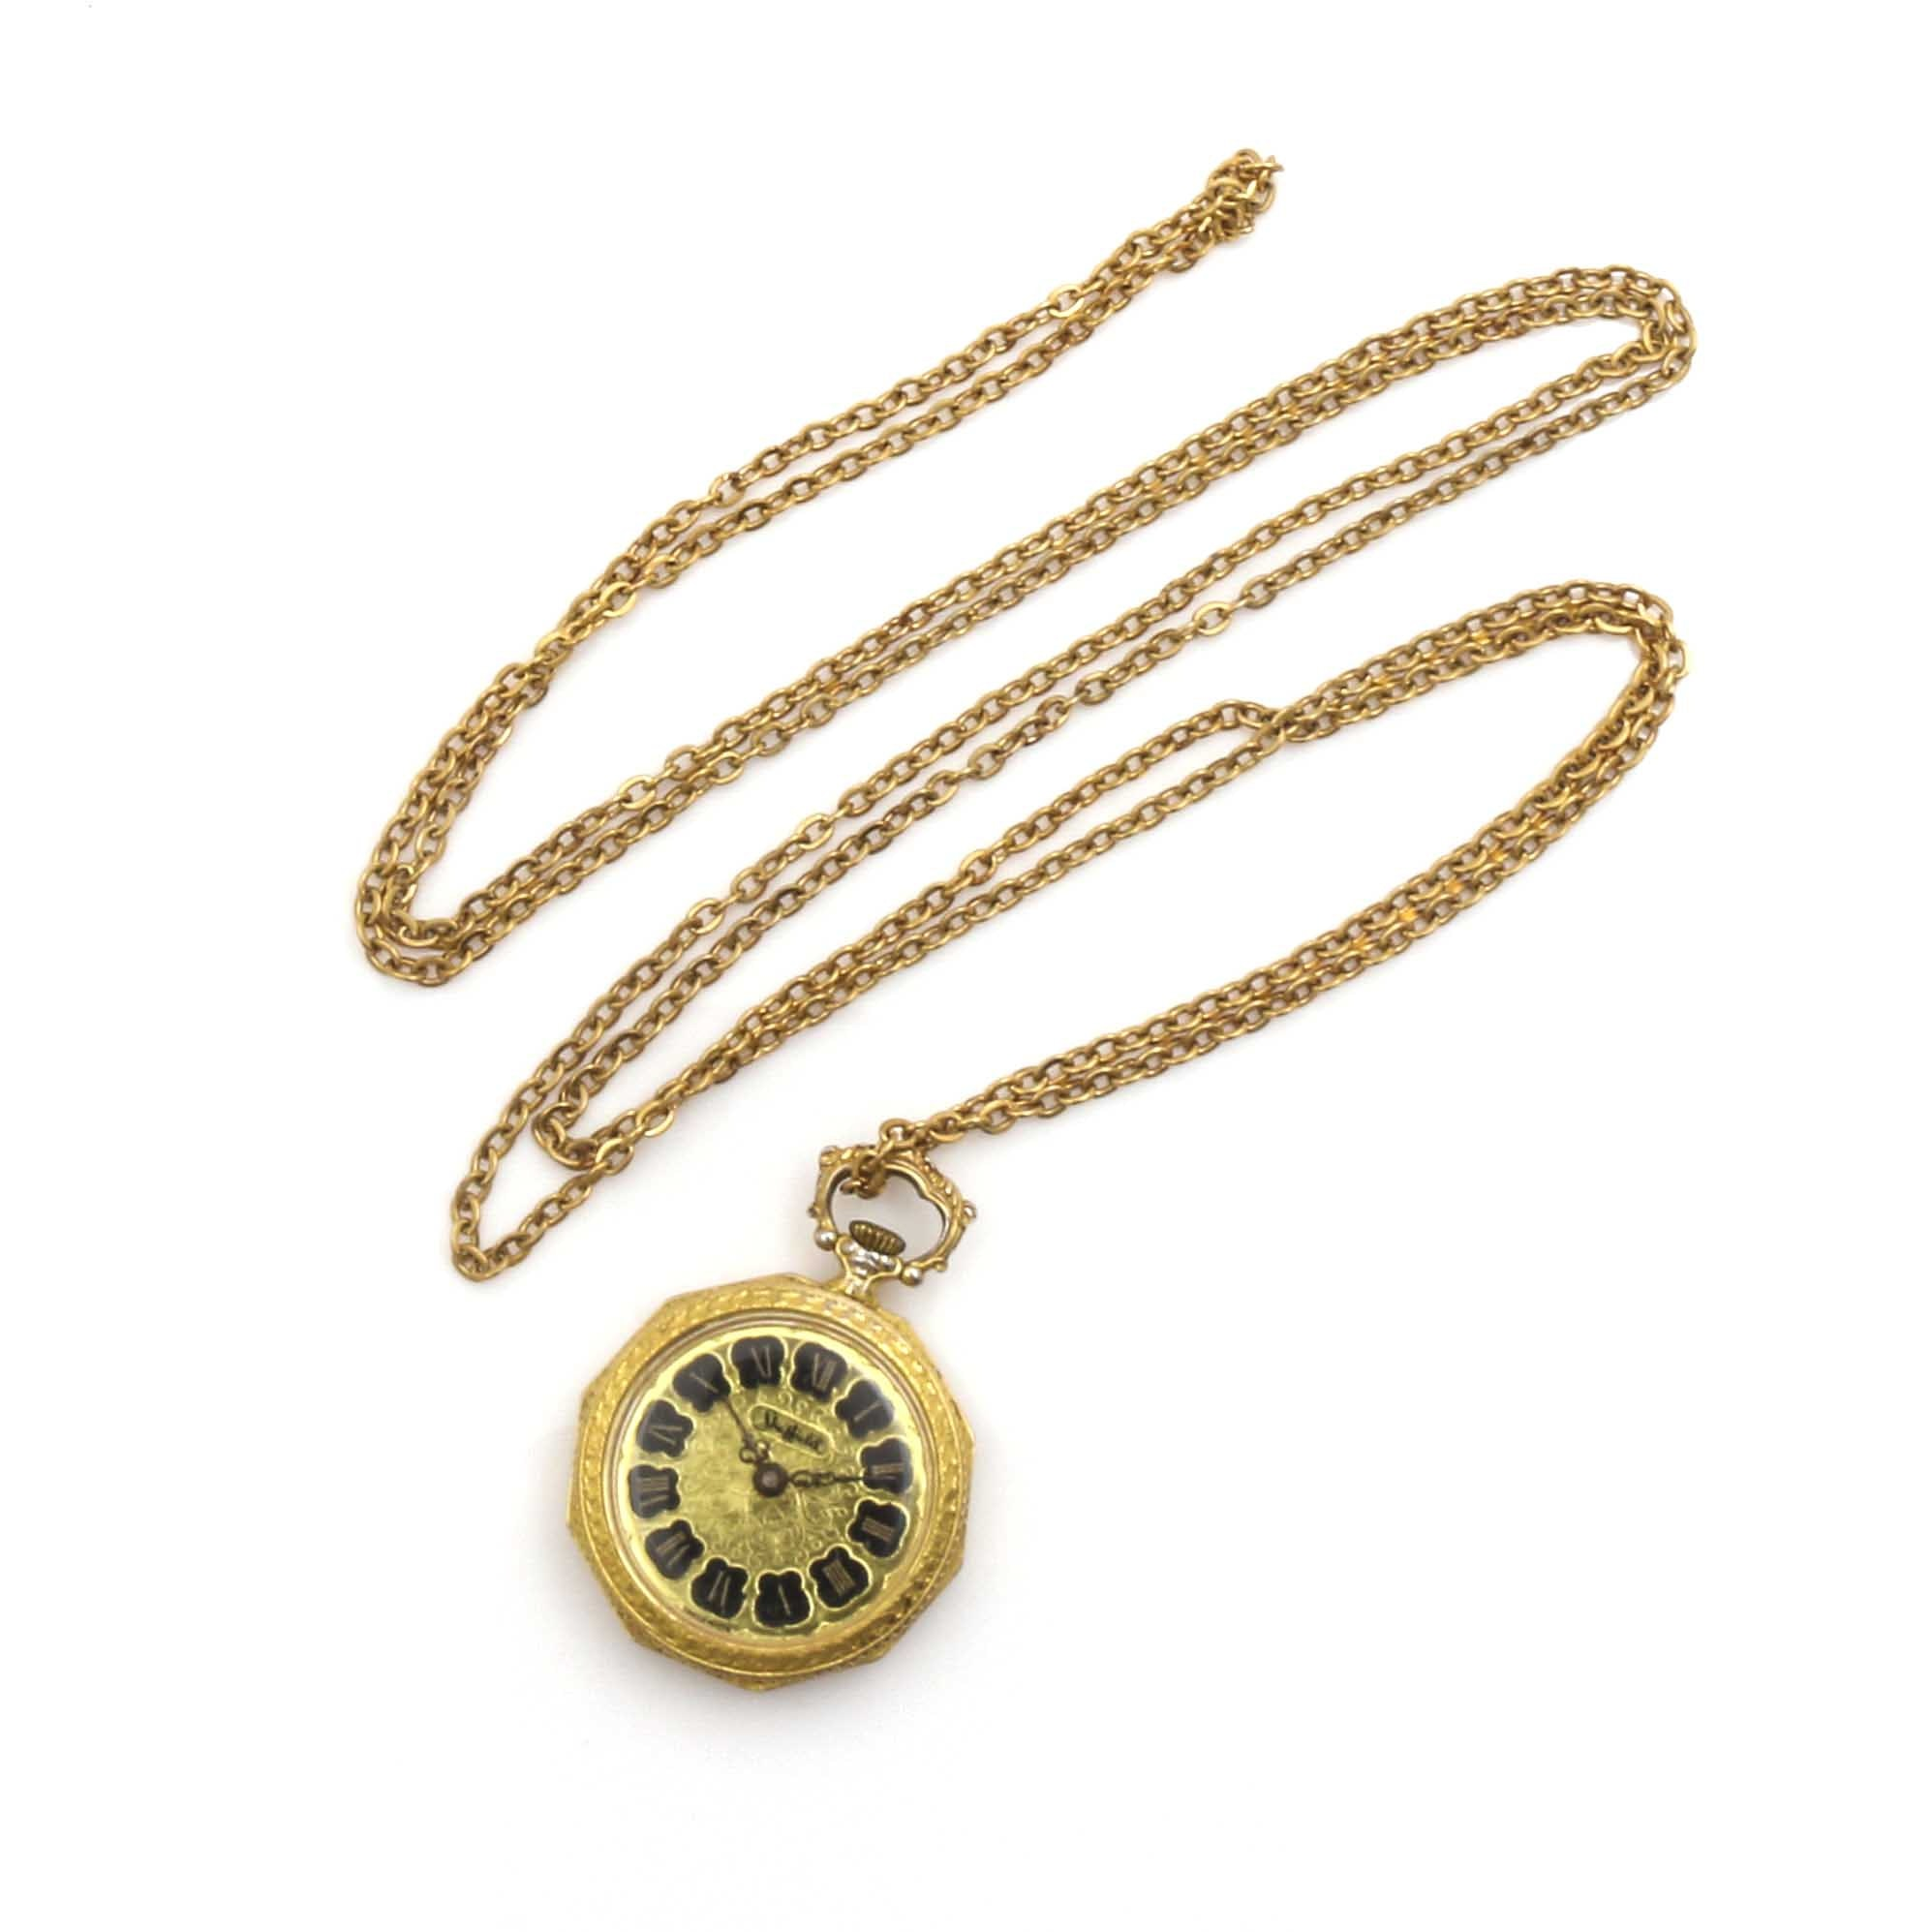 Sheffield Open Face Pendant Watch with Fob Chain